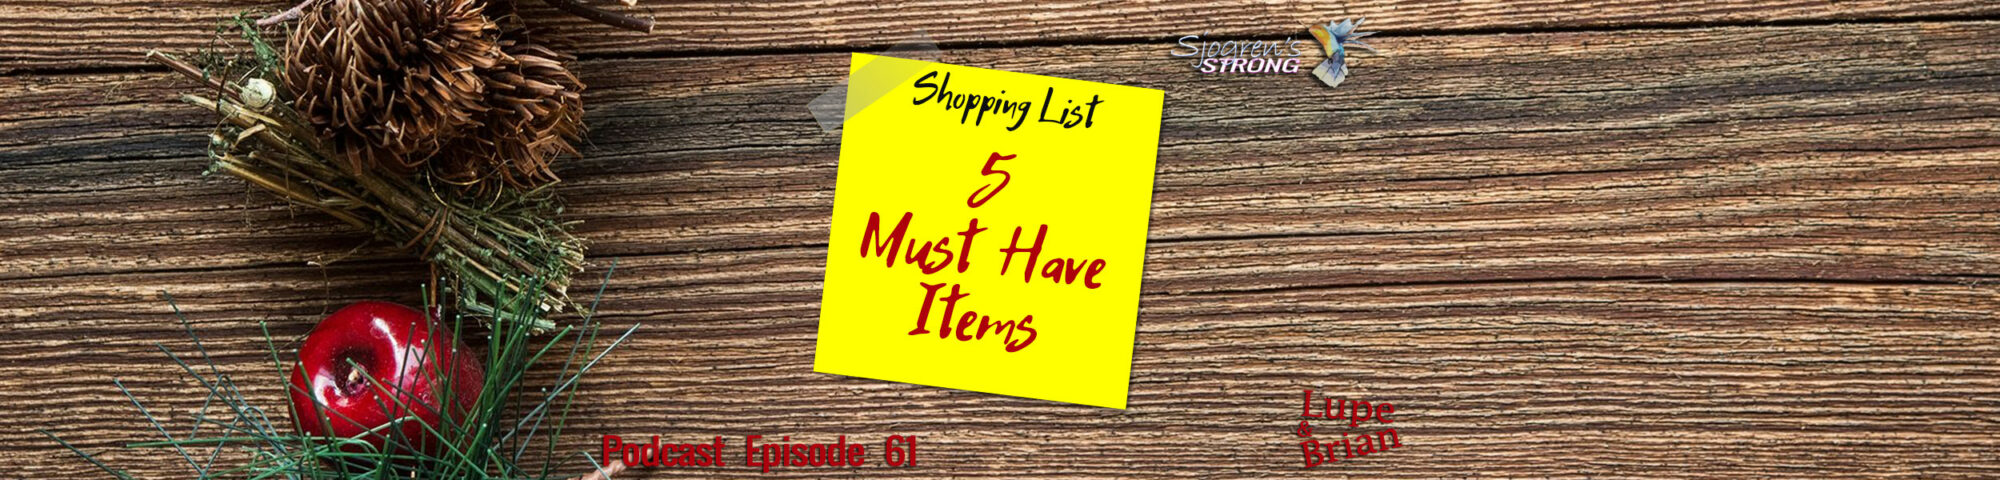 5 Must Have Items if you have Sjogren's Syndrome